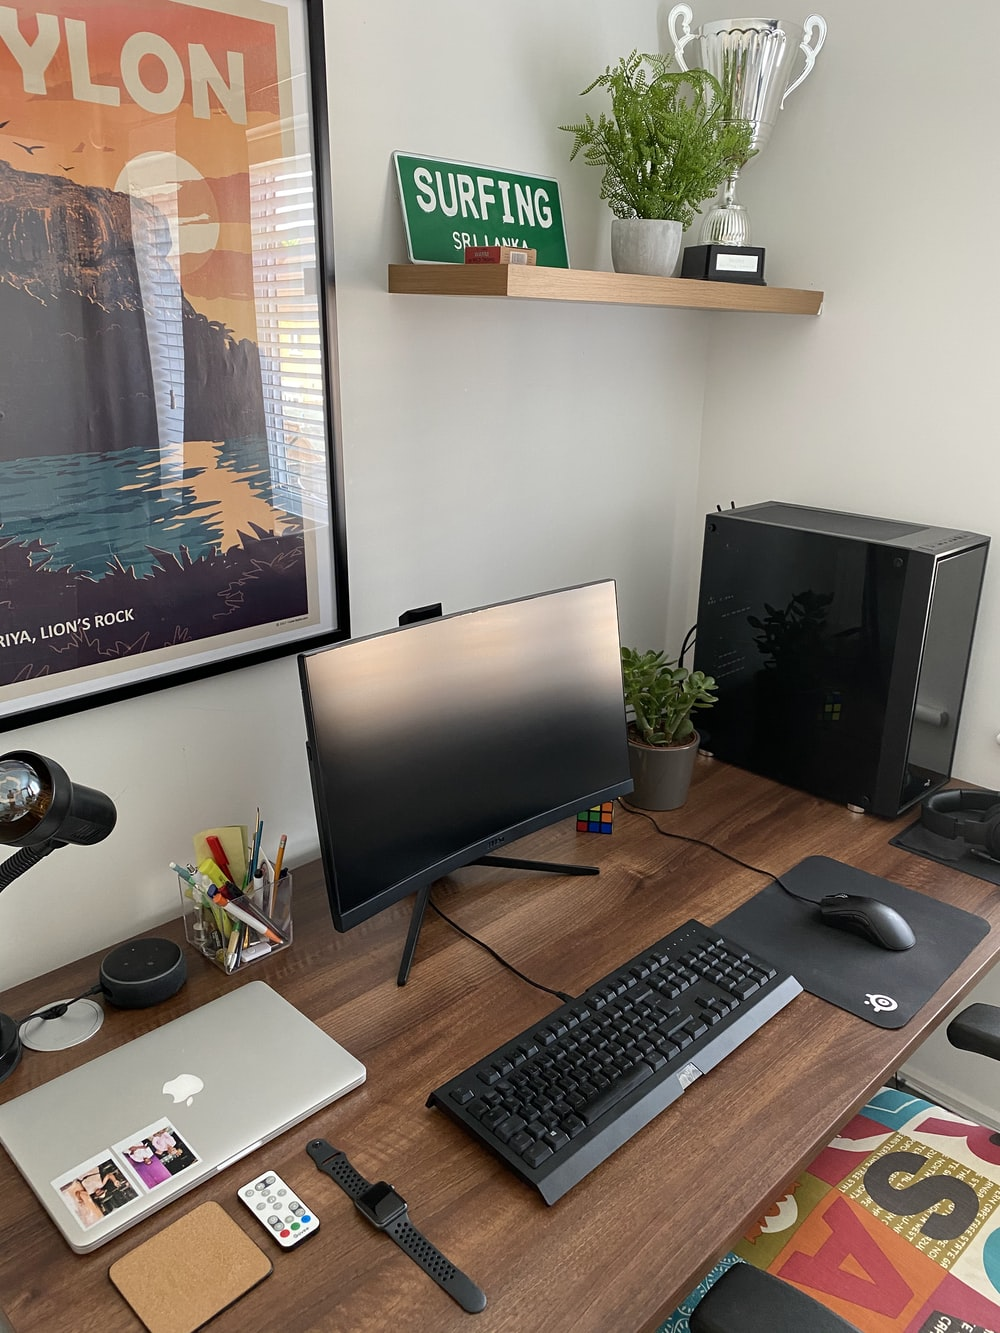 black flat screen computer monitor and black computer keyboard on brown wooden desk